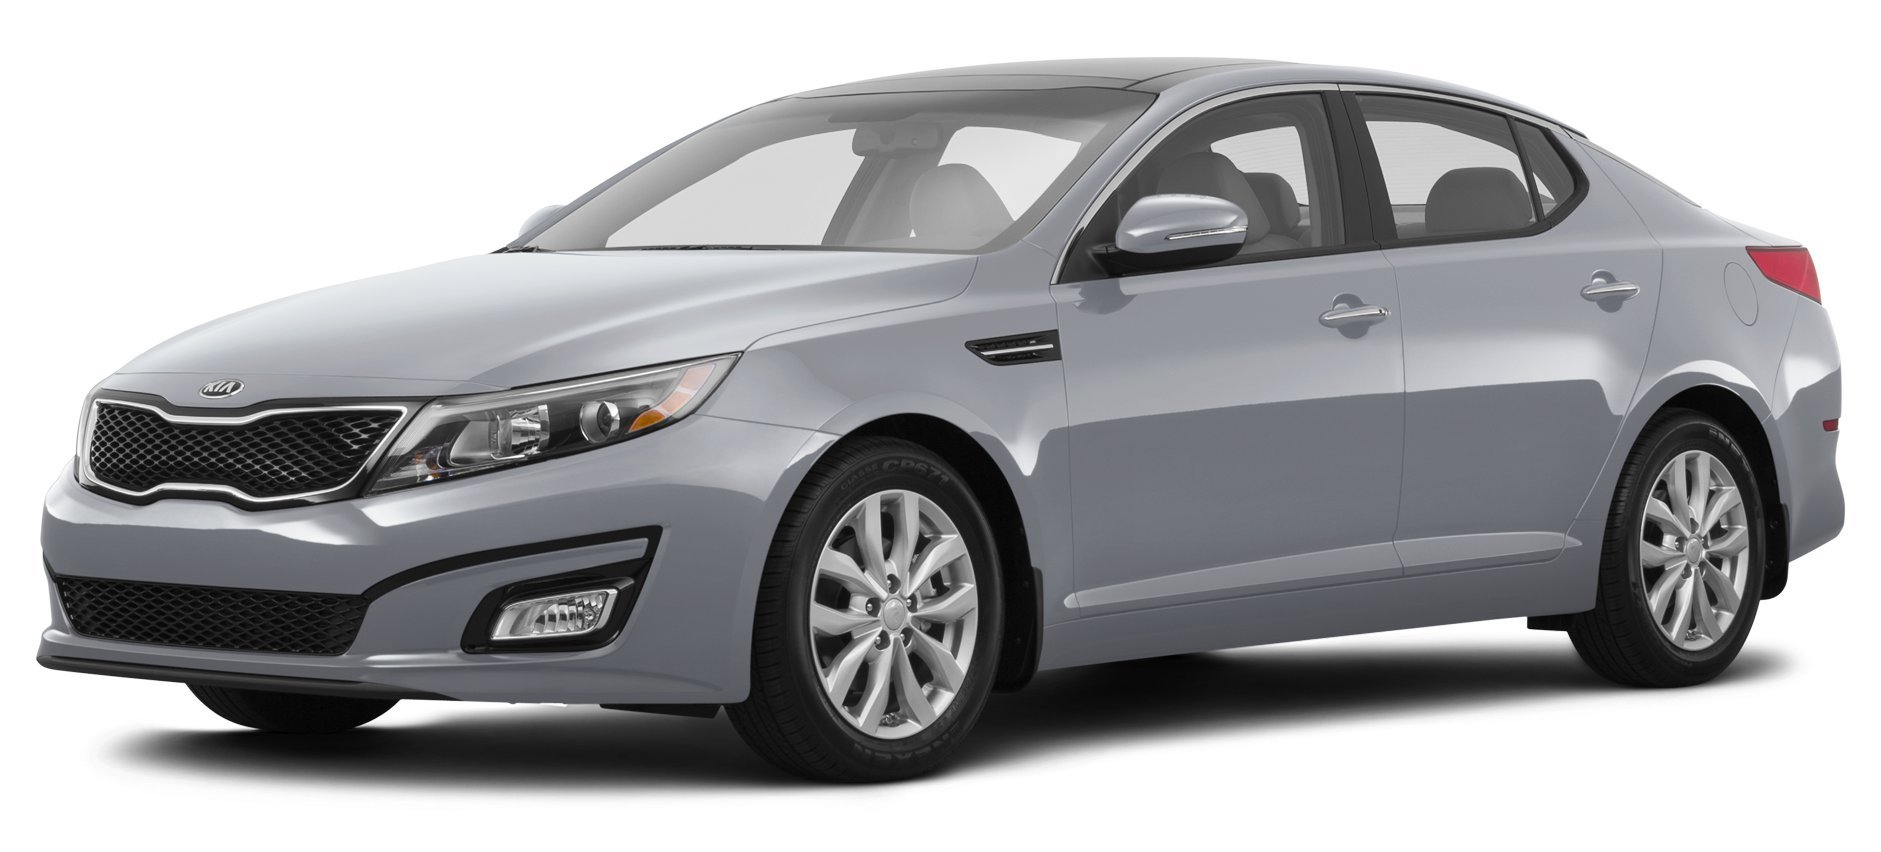 2015 kia optima reviews images and specs vehicles. Black Bedroom Furniture Sets. Home Design Ideas